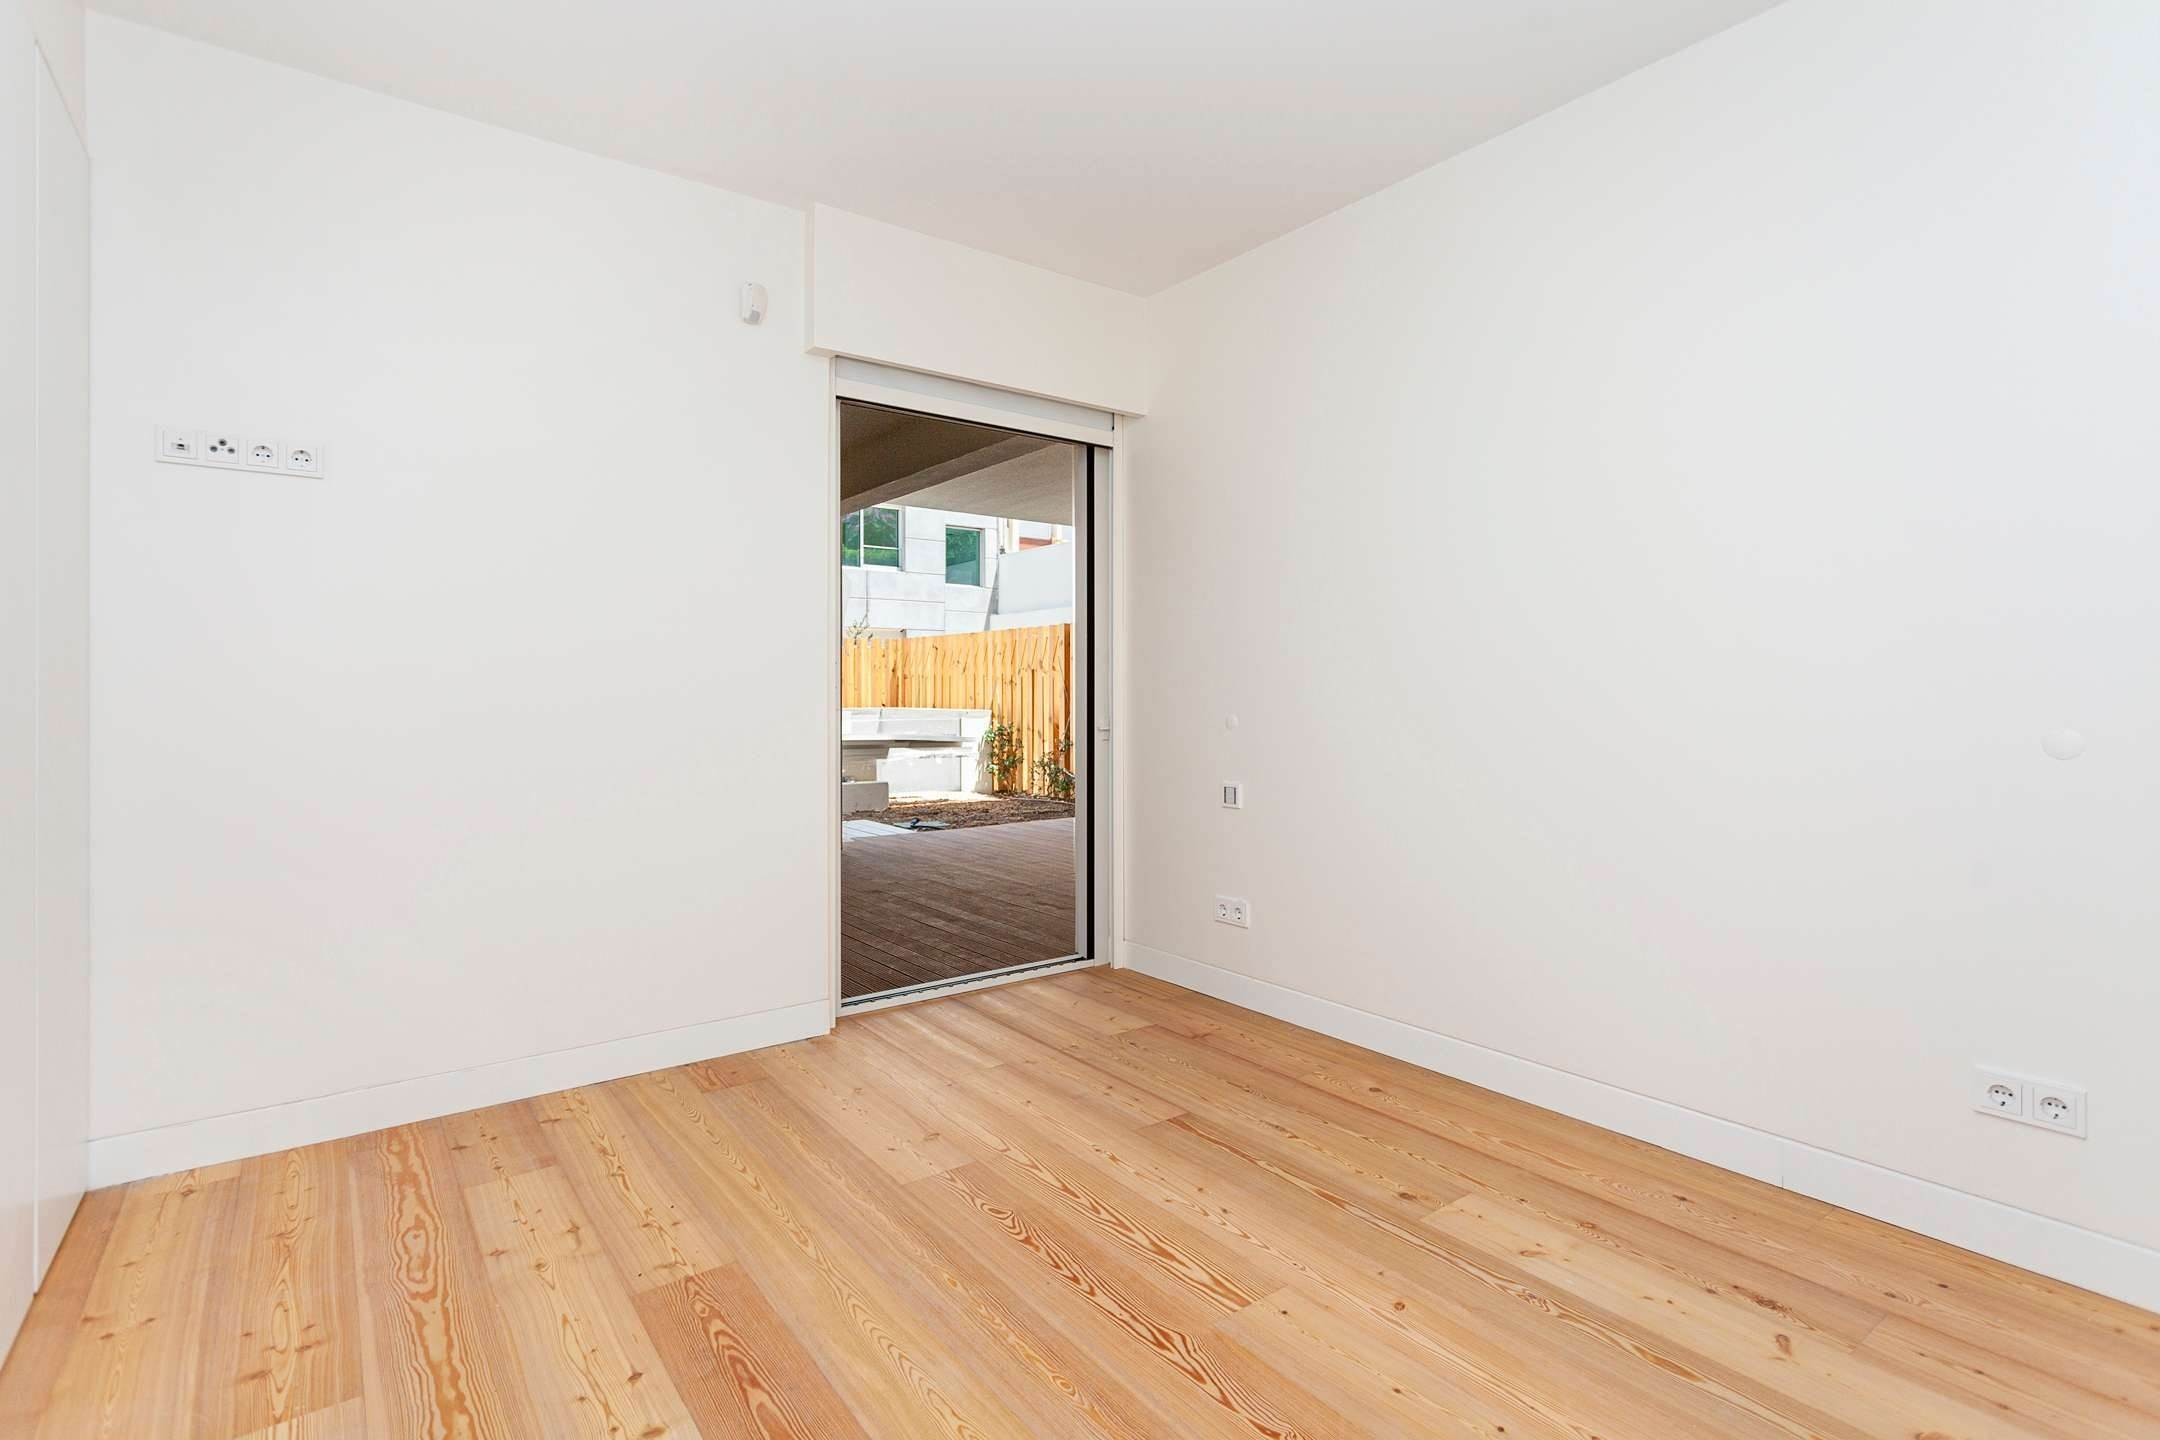 13. Apartamentos para Venda às 2 bedroom apartment, new and ready to debut, close to the most prestigious and sought after avenue of Lisbon.With an 87 ... Lisboa, Portugal